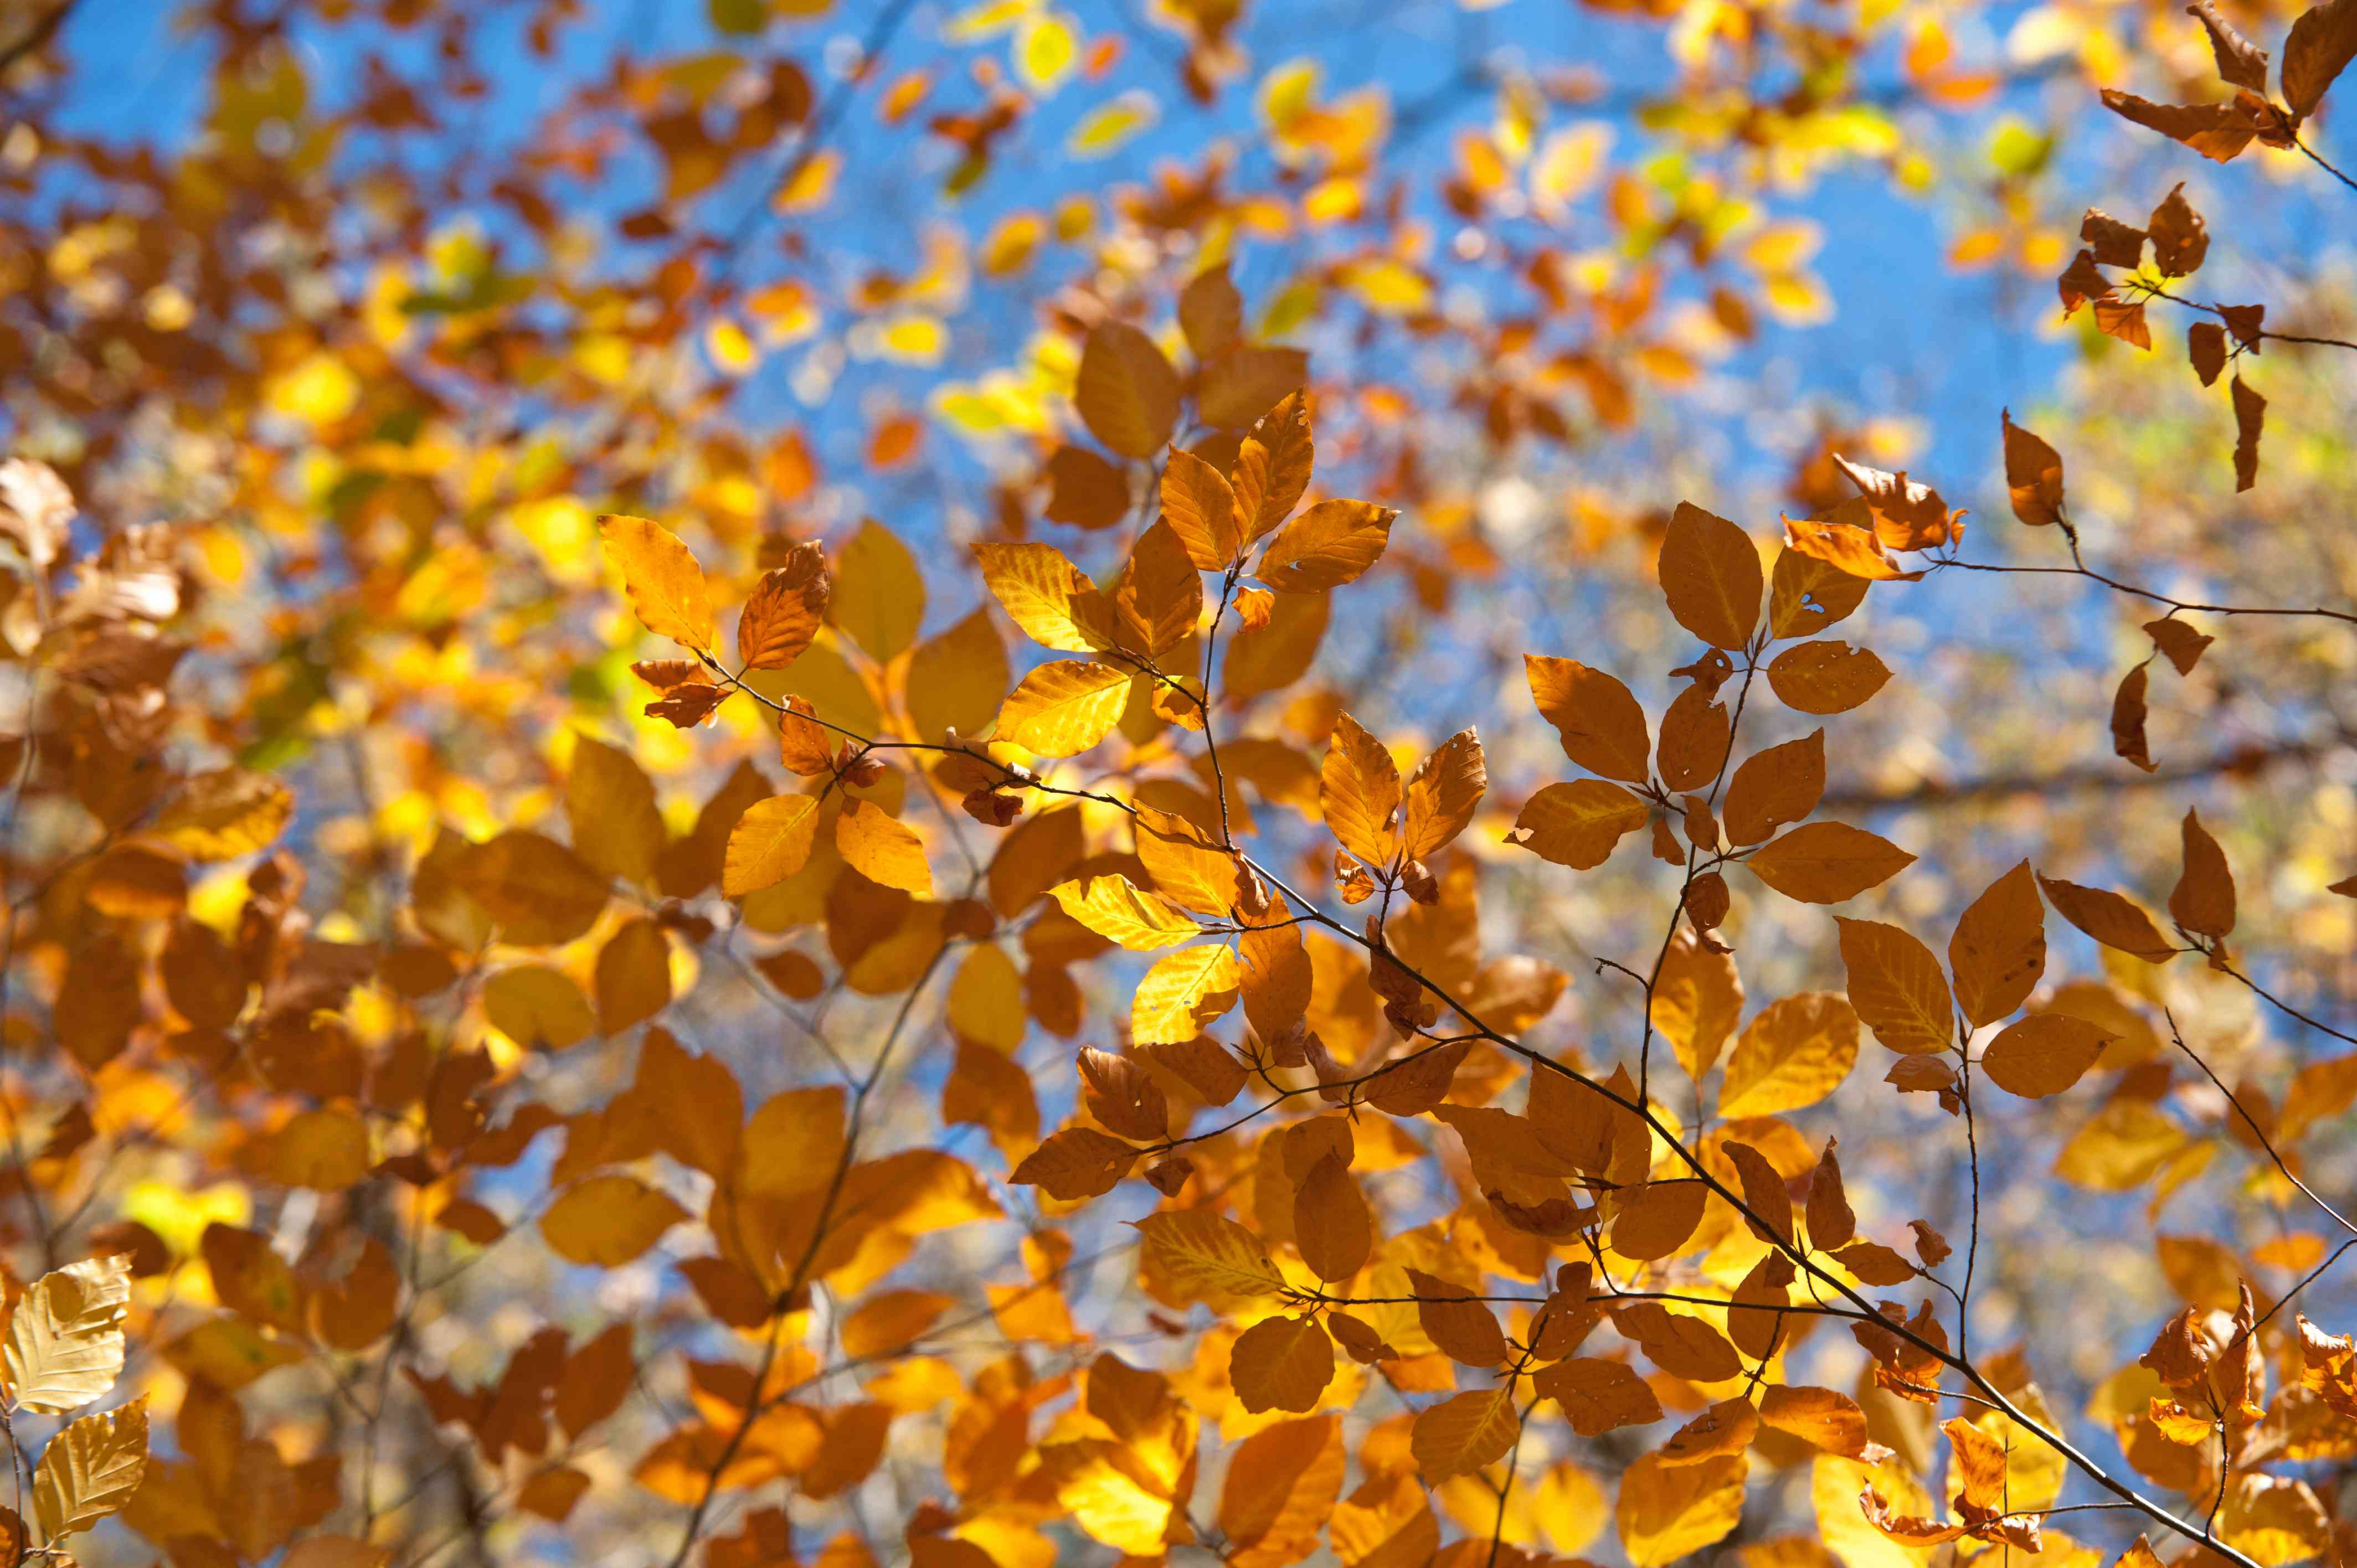 European beech tree branches with orange and yellow leaves closeup